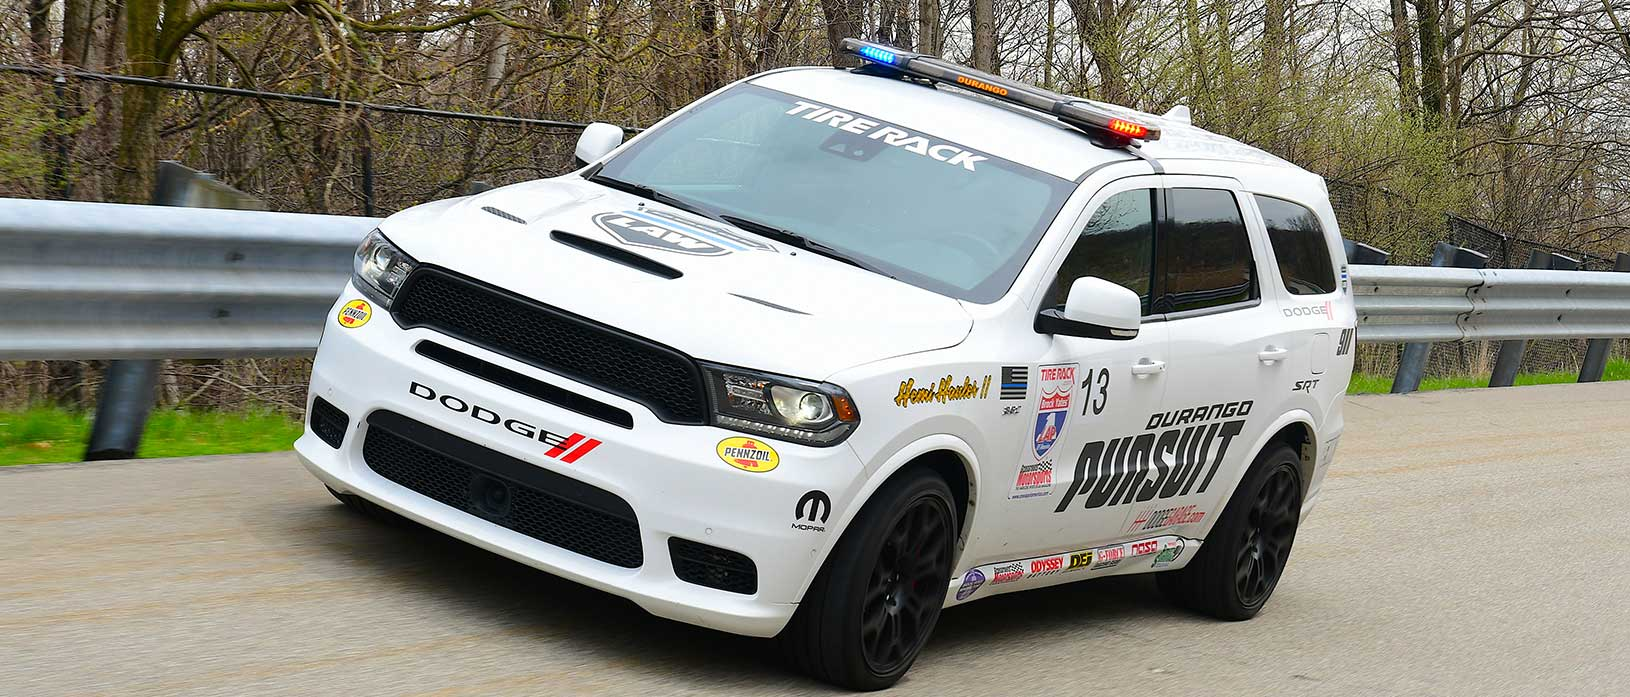 White Dodge Durango SRT Pursuit with race decals driving around a track